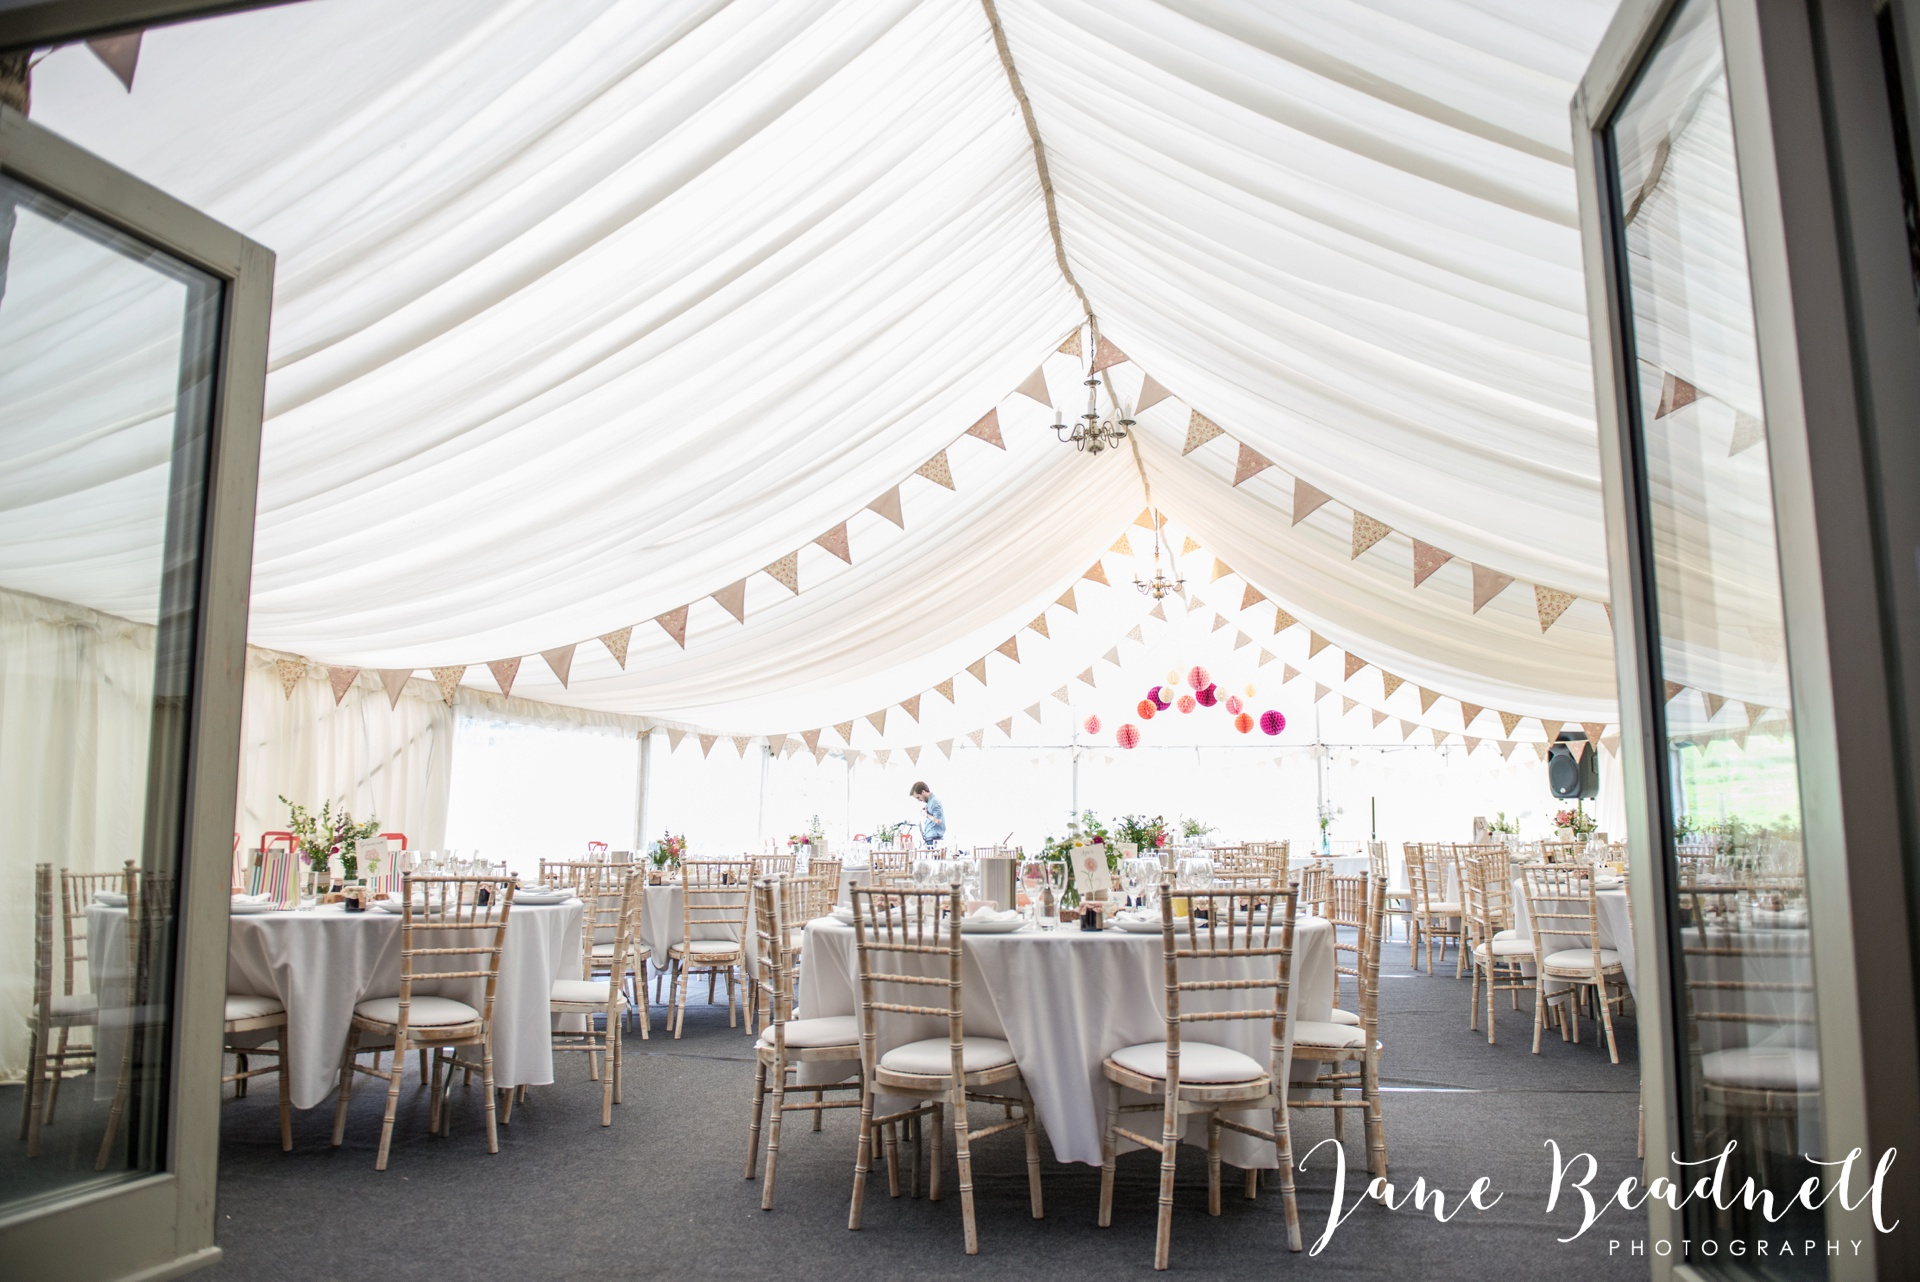 Yorkshire Wedding Photography the cheerful Chilli Barn Wedding by Jane Beadnell Photography_0113